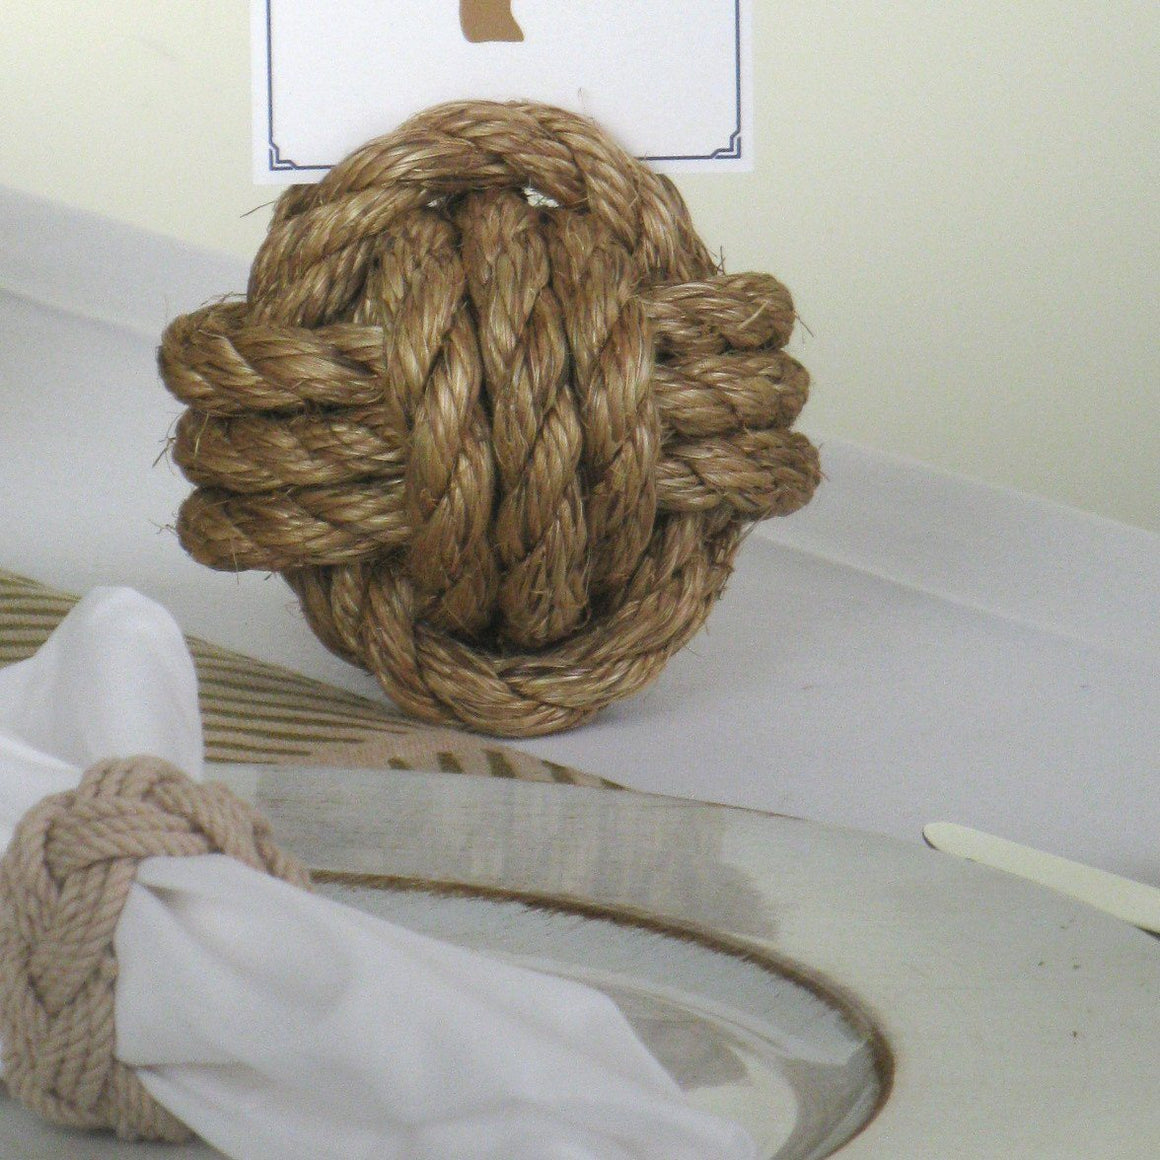 "Nautical Knot Card Holder, Manila, 4"", 3-Pass - Mystic Knotwork nautical knot"